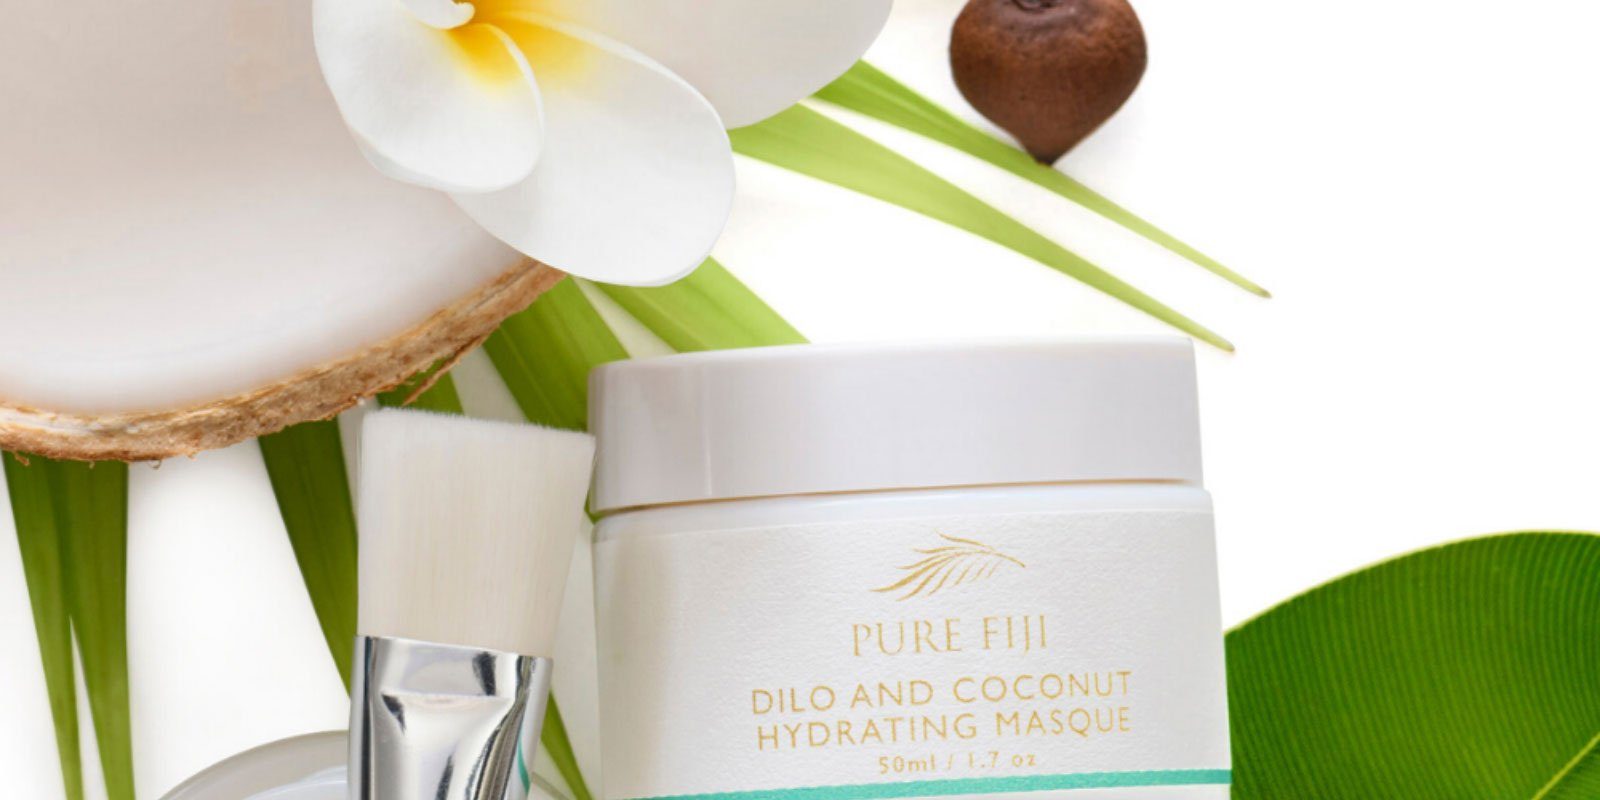 Natural Face Masks for Beginners: 5 Types You Need to Know About